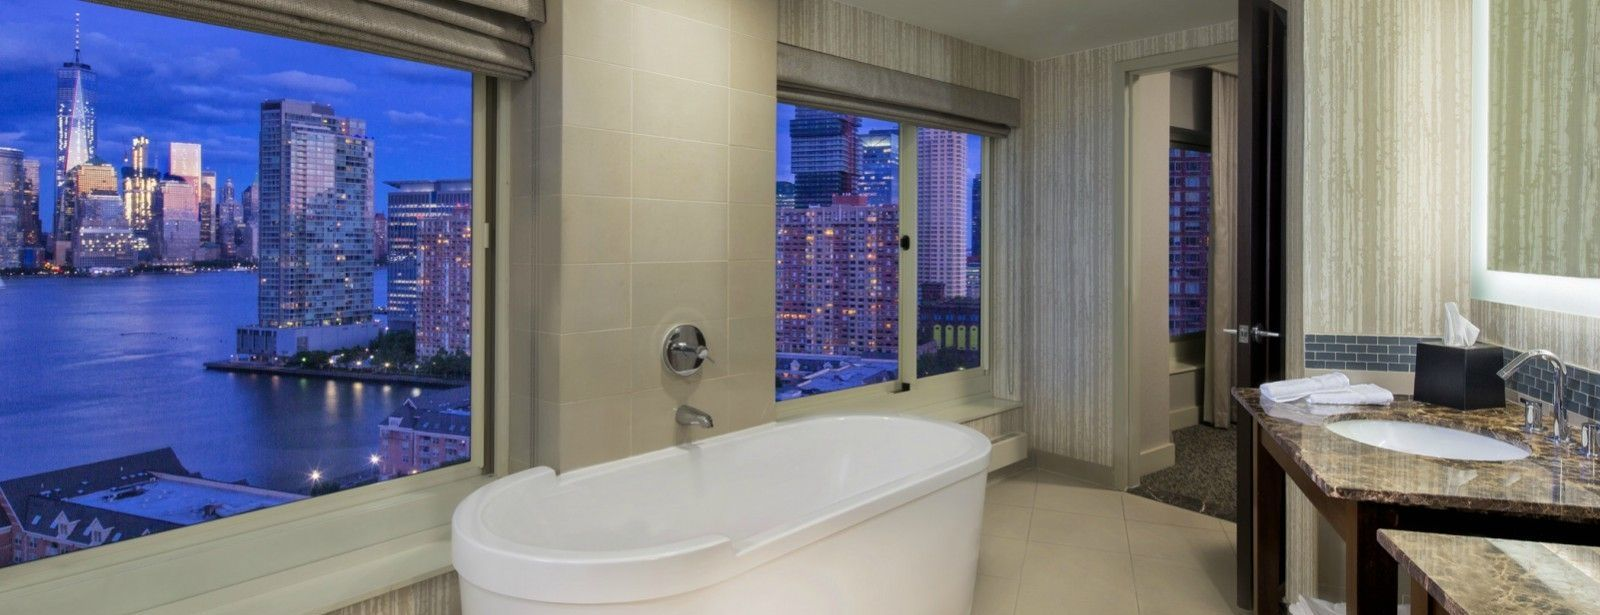 Jersey City Accommodations | Premium Newport King Room Bathroom